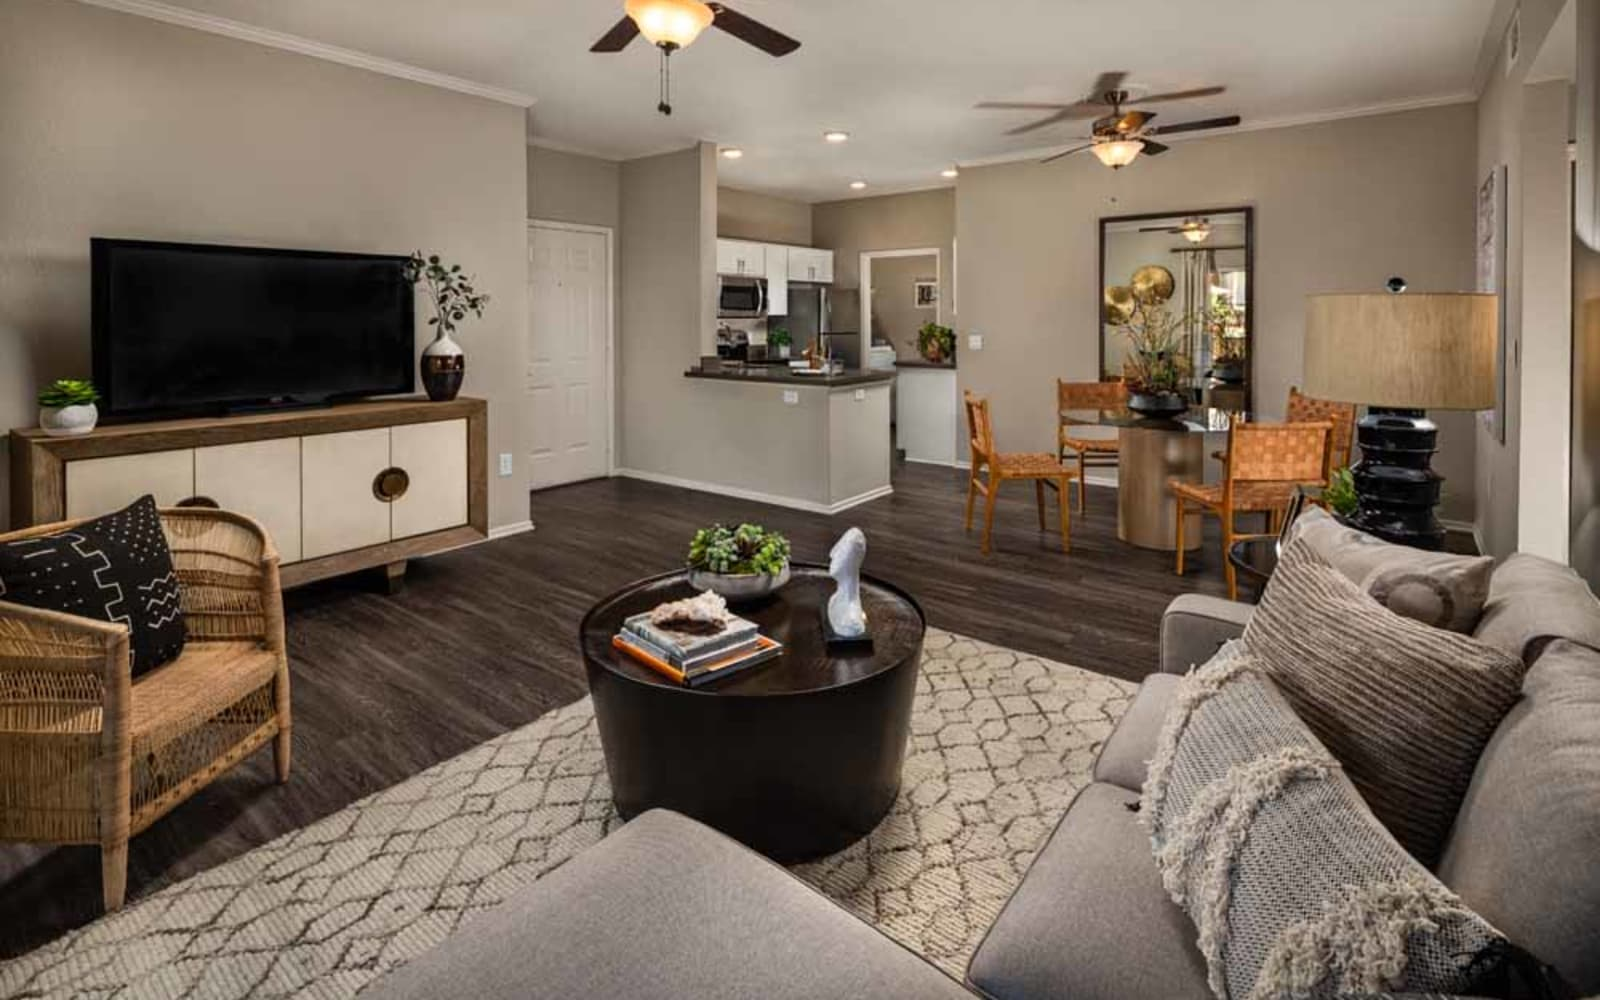 A furnished apartment living room at Colonnade at Sycamore Highlands in Riverside, California